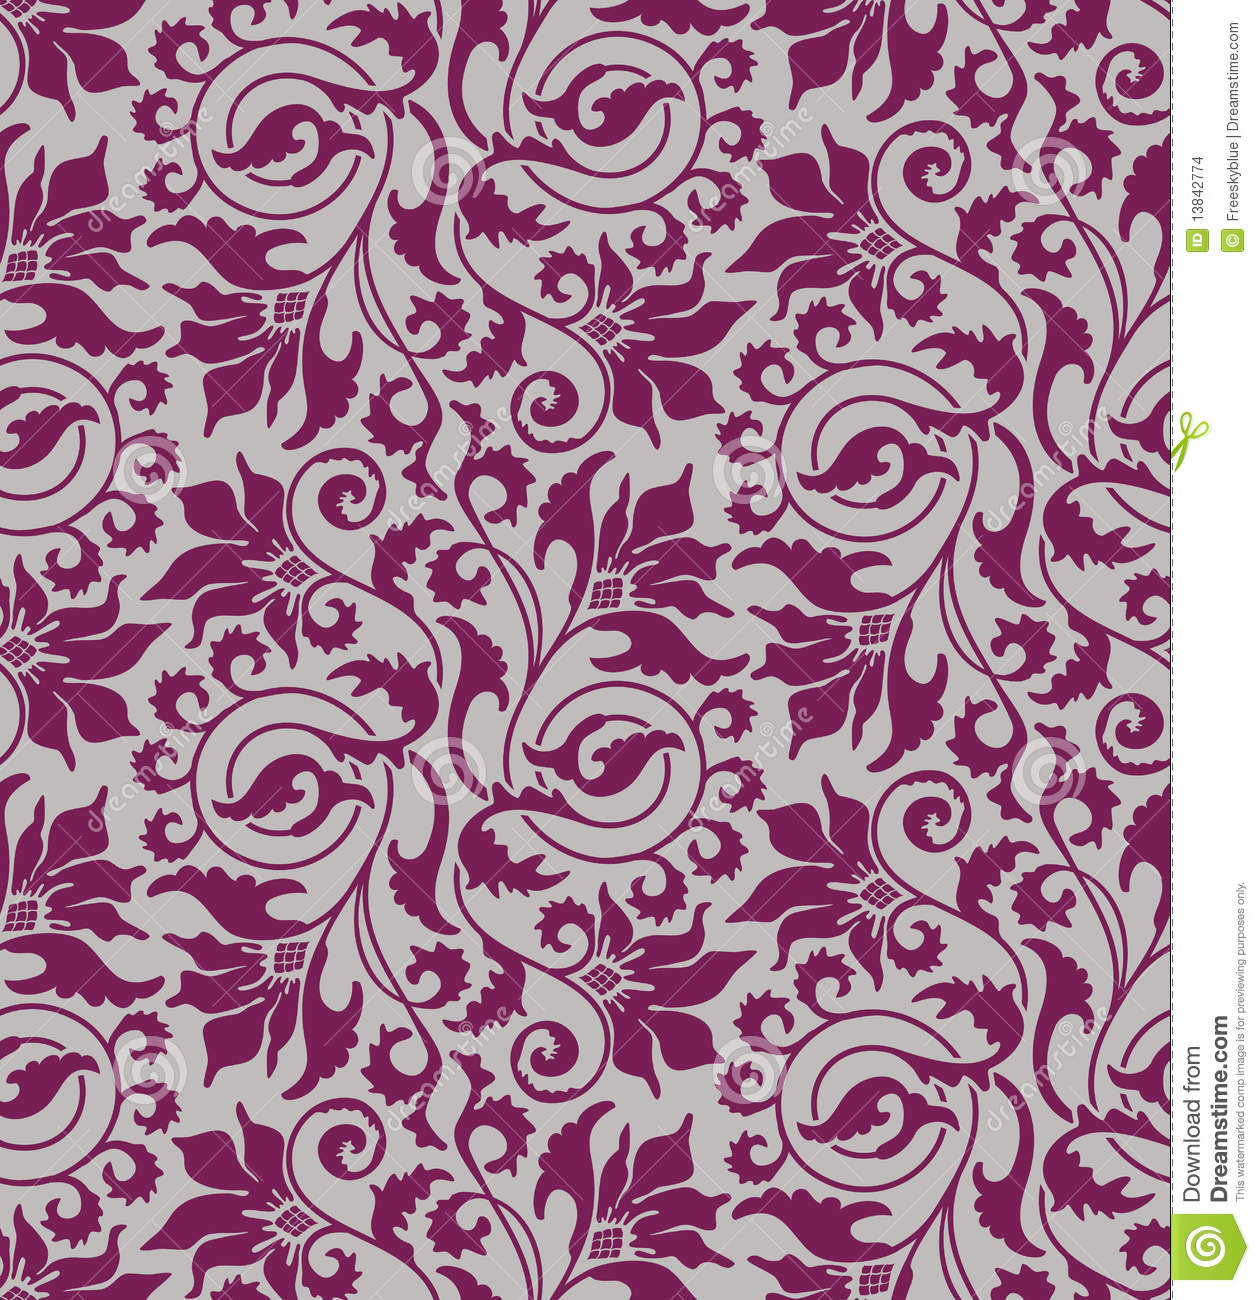 Red And White Patterned Wallpaper: Purple Seamless Flower Damask Background Stock Images